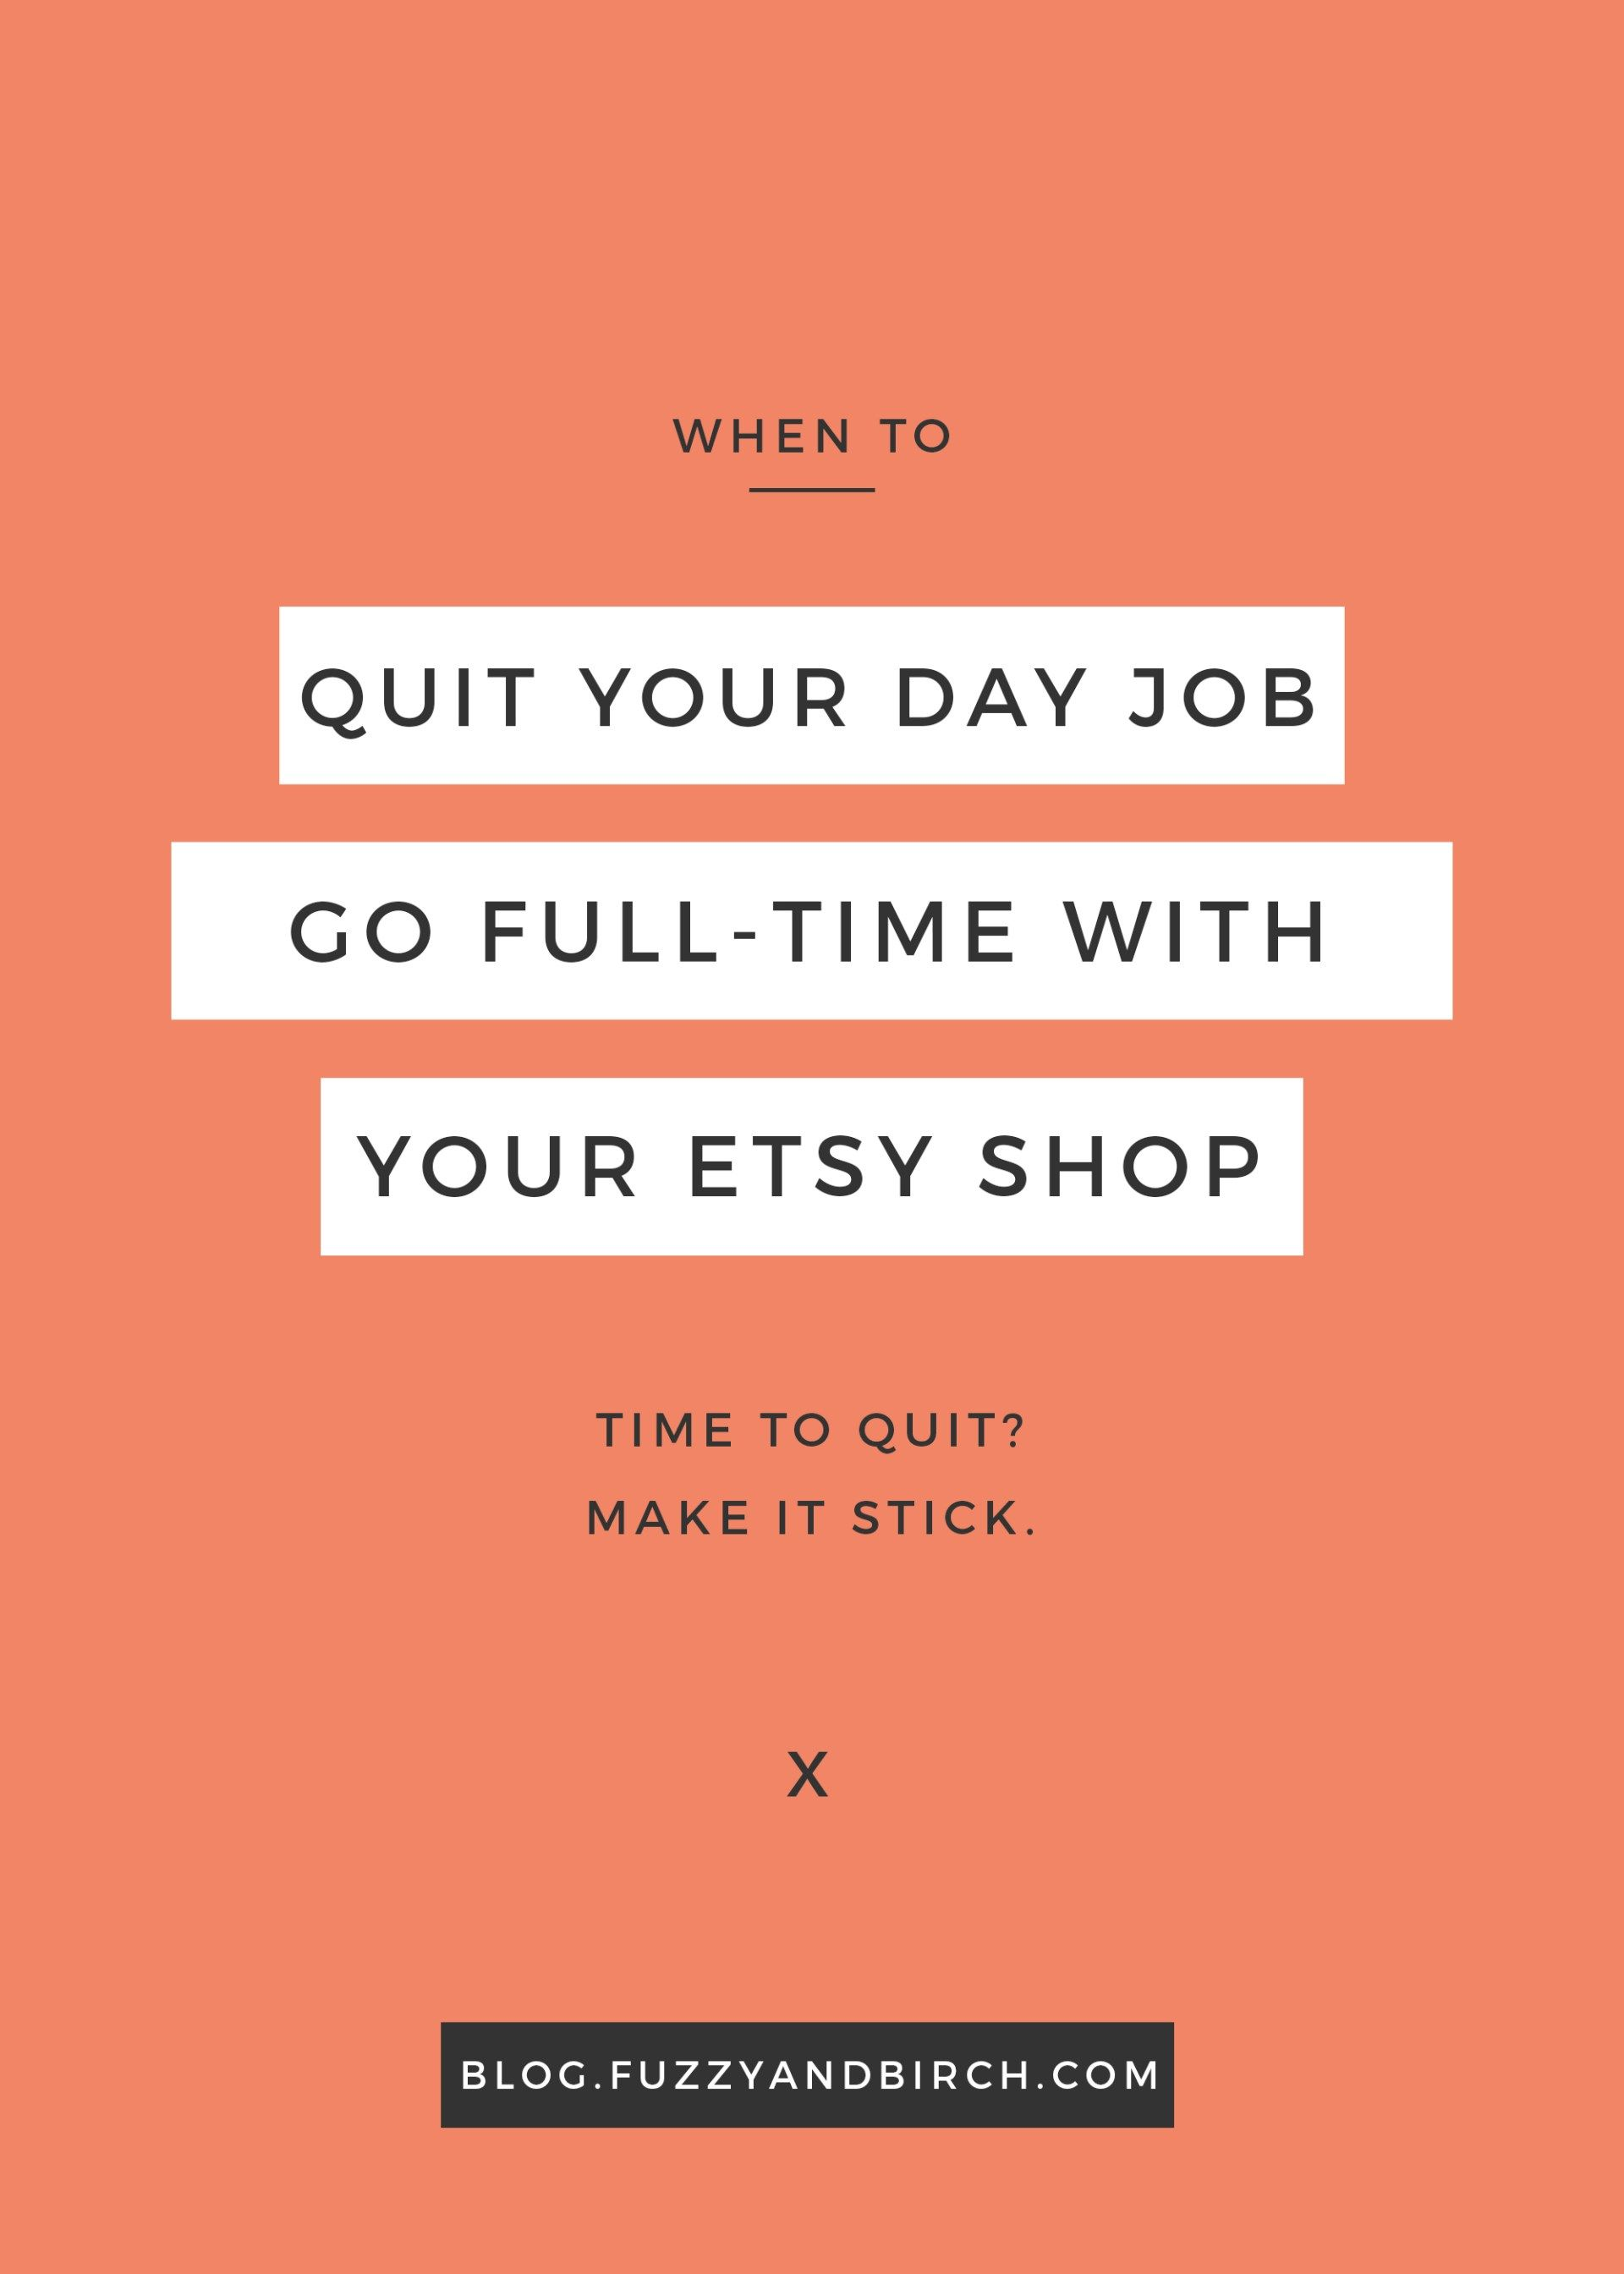 When to quit your day job going fulltime with your side